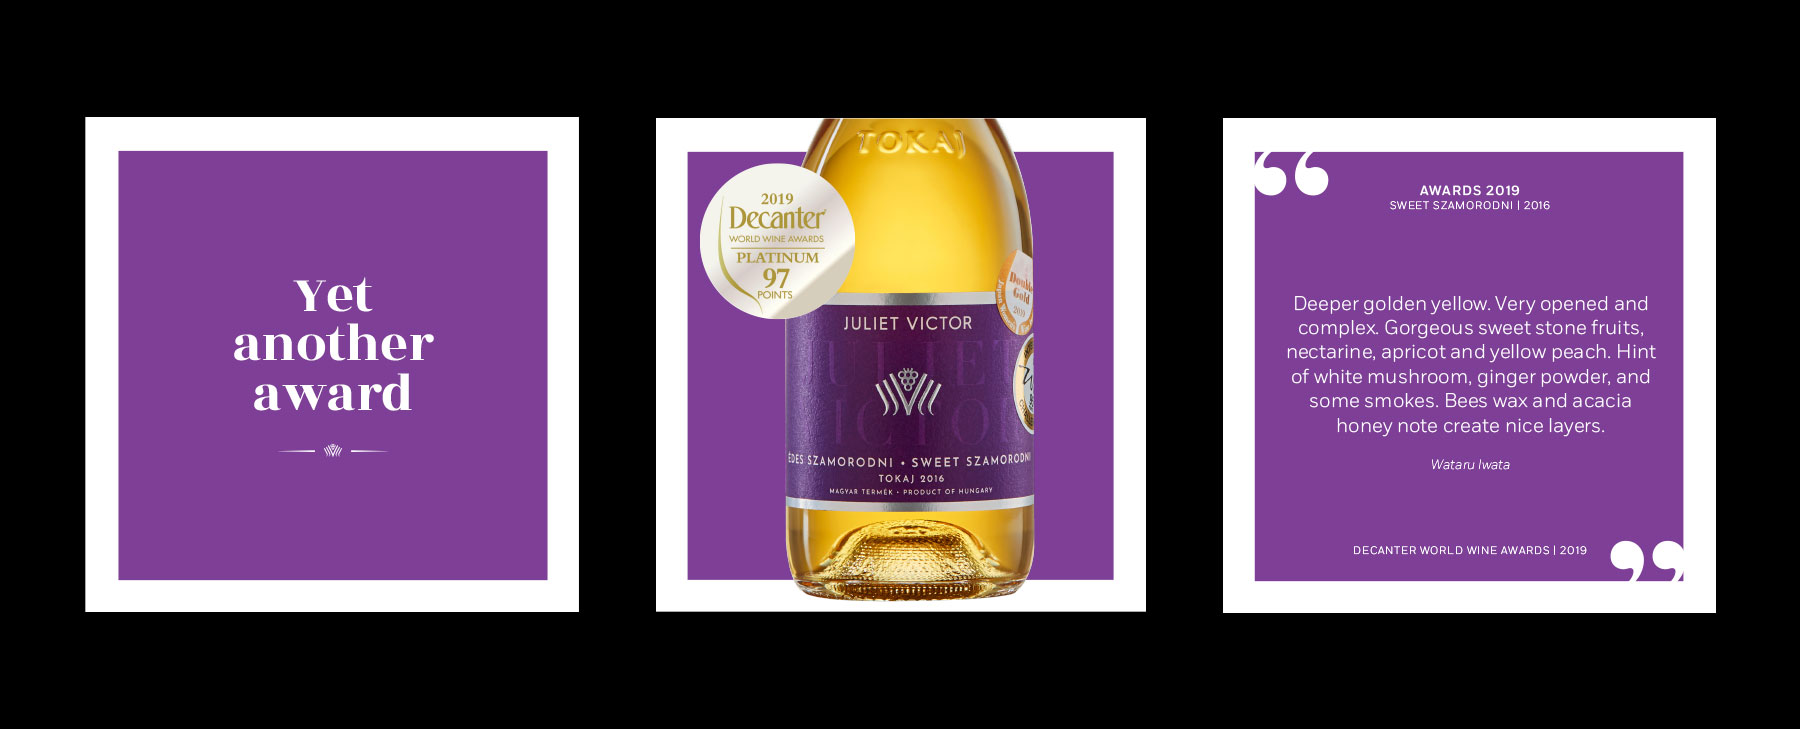 Juliet victor logo in gold on purple background and preview of black special edition wine box which is narrower at the top